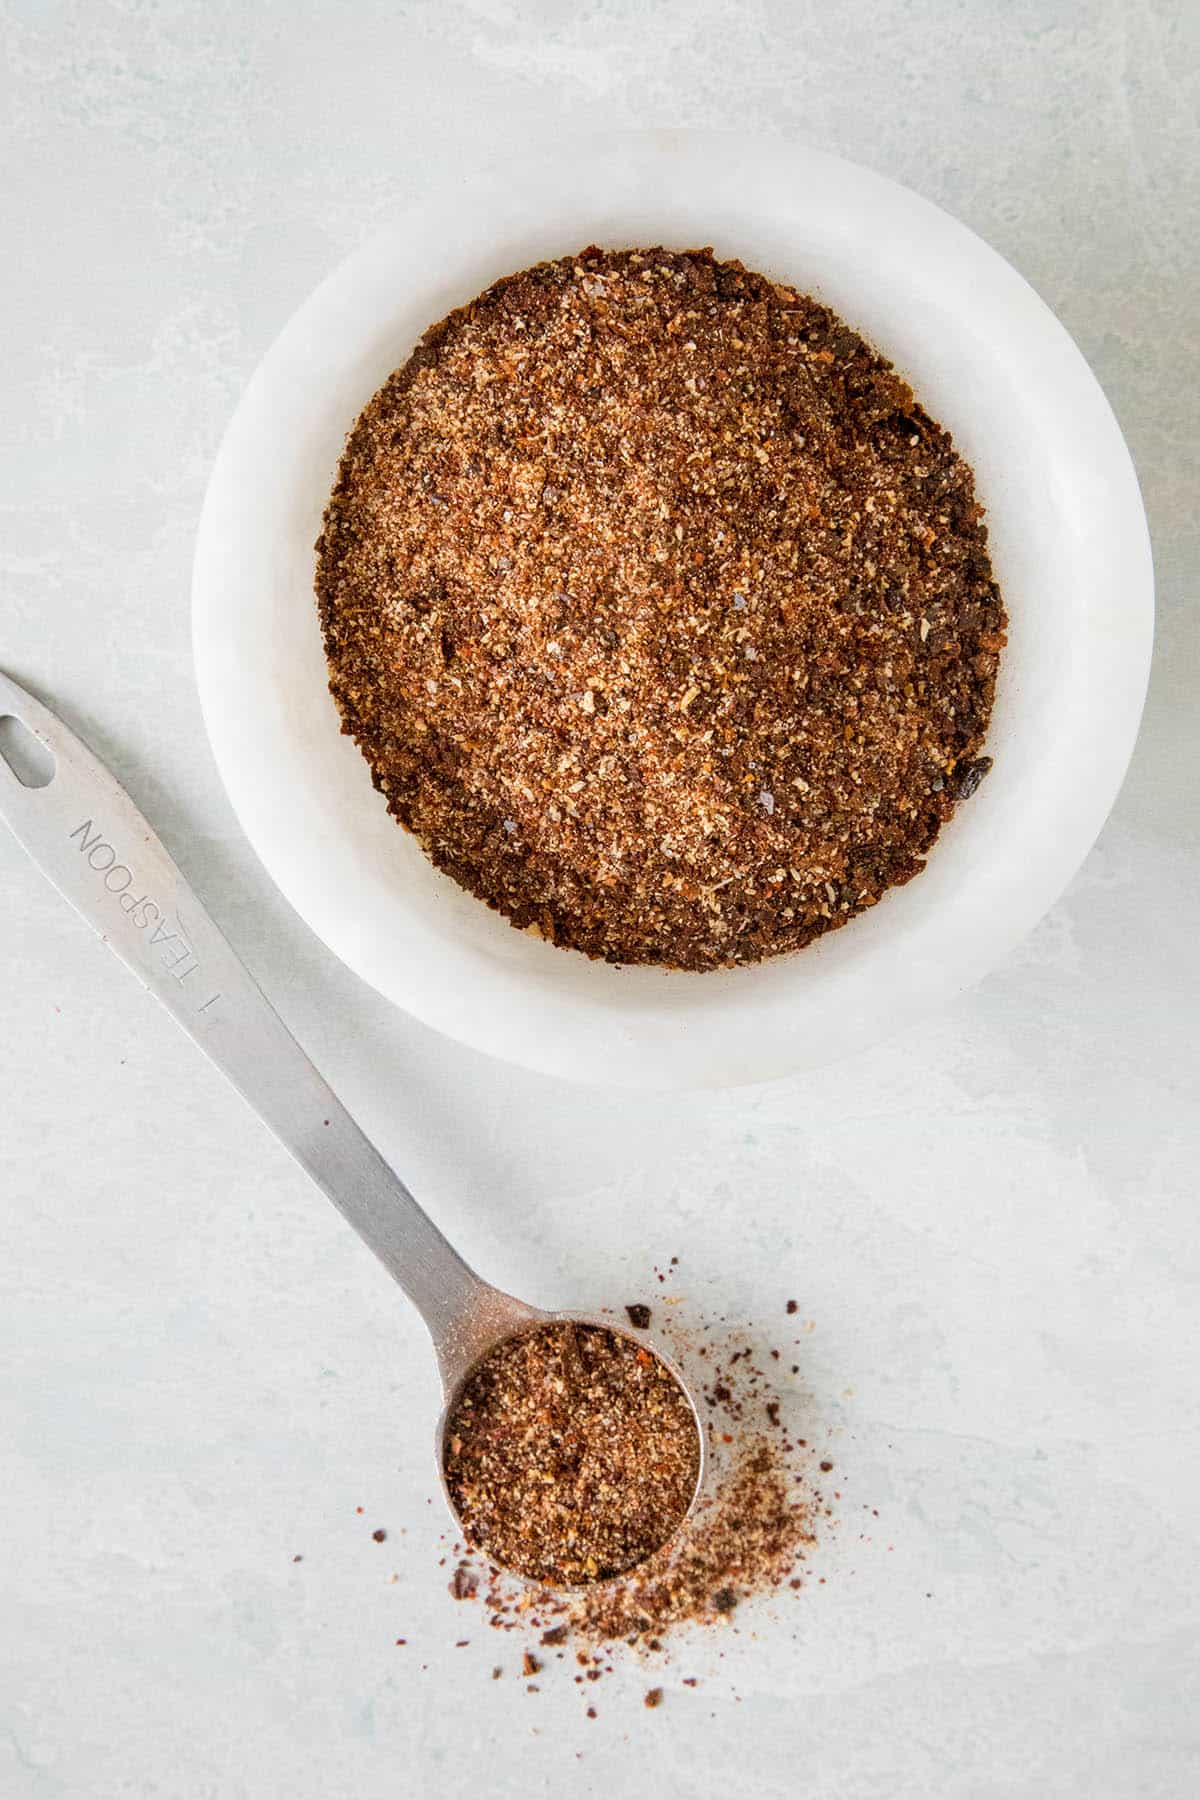 Homemade Chili Powder - In a bowl